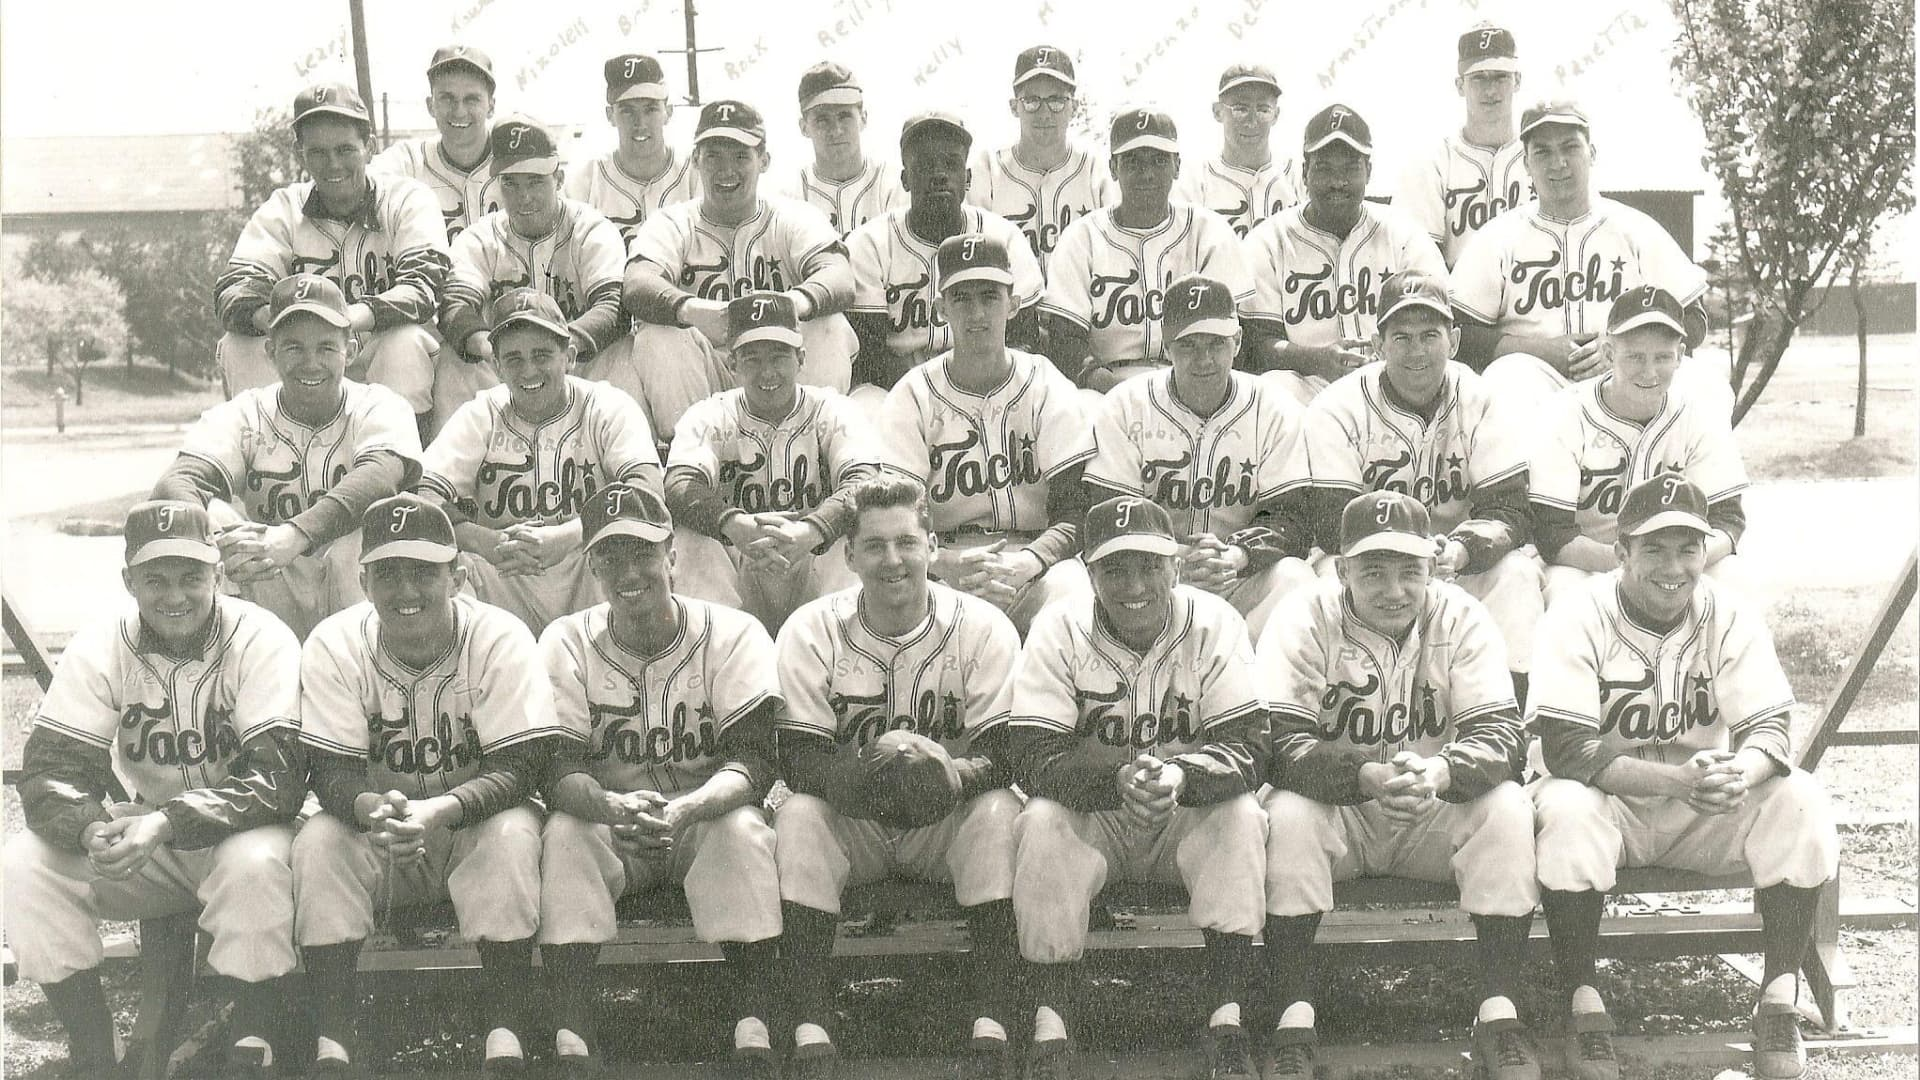 The Tachikawa Red Devils. Dan Porte is pictured in the first row, 2nd from the left.